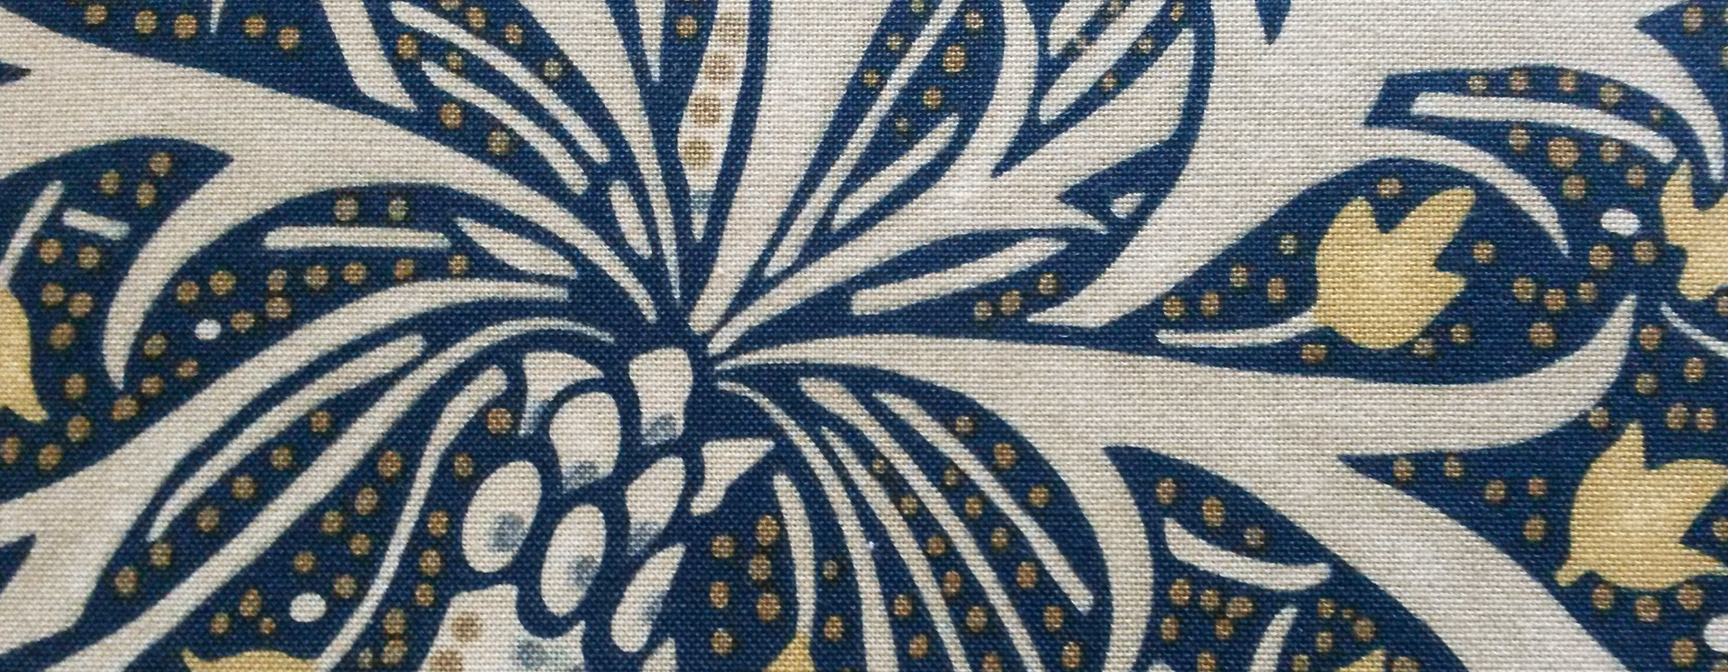 William Morris fabric used for triple pleat interlined curtains